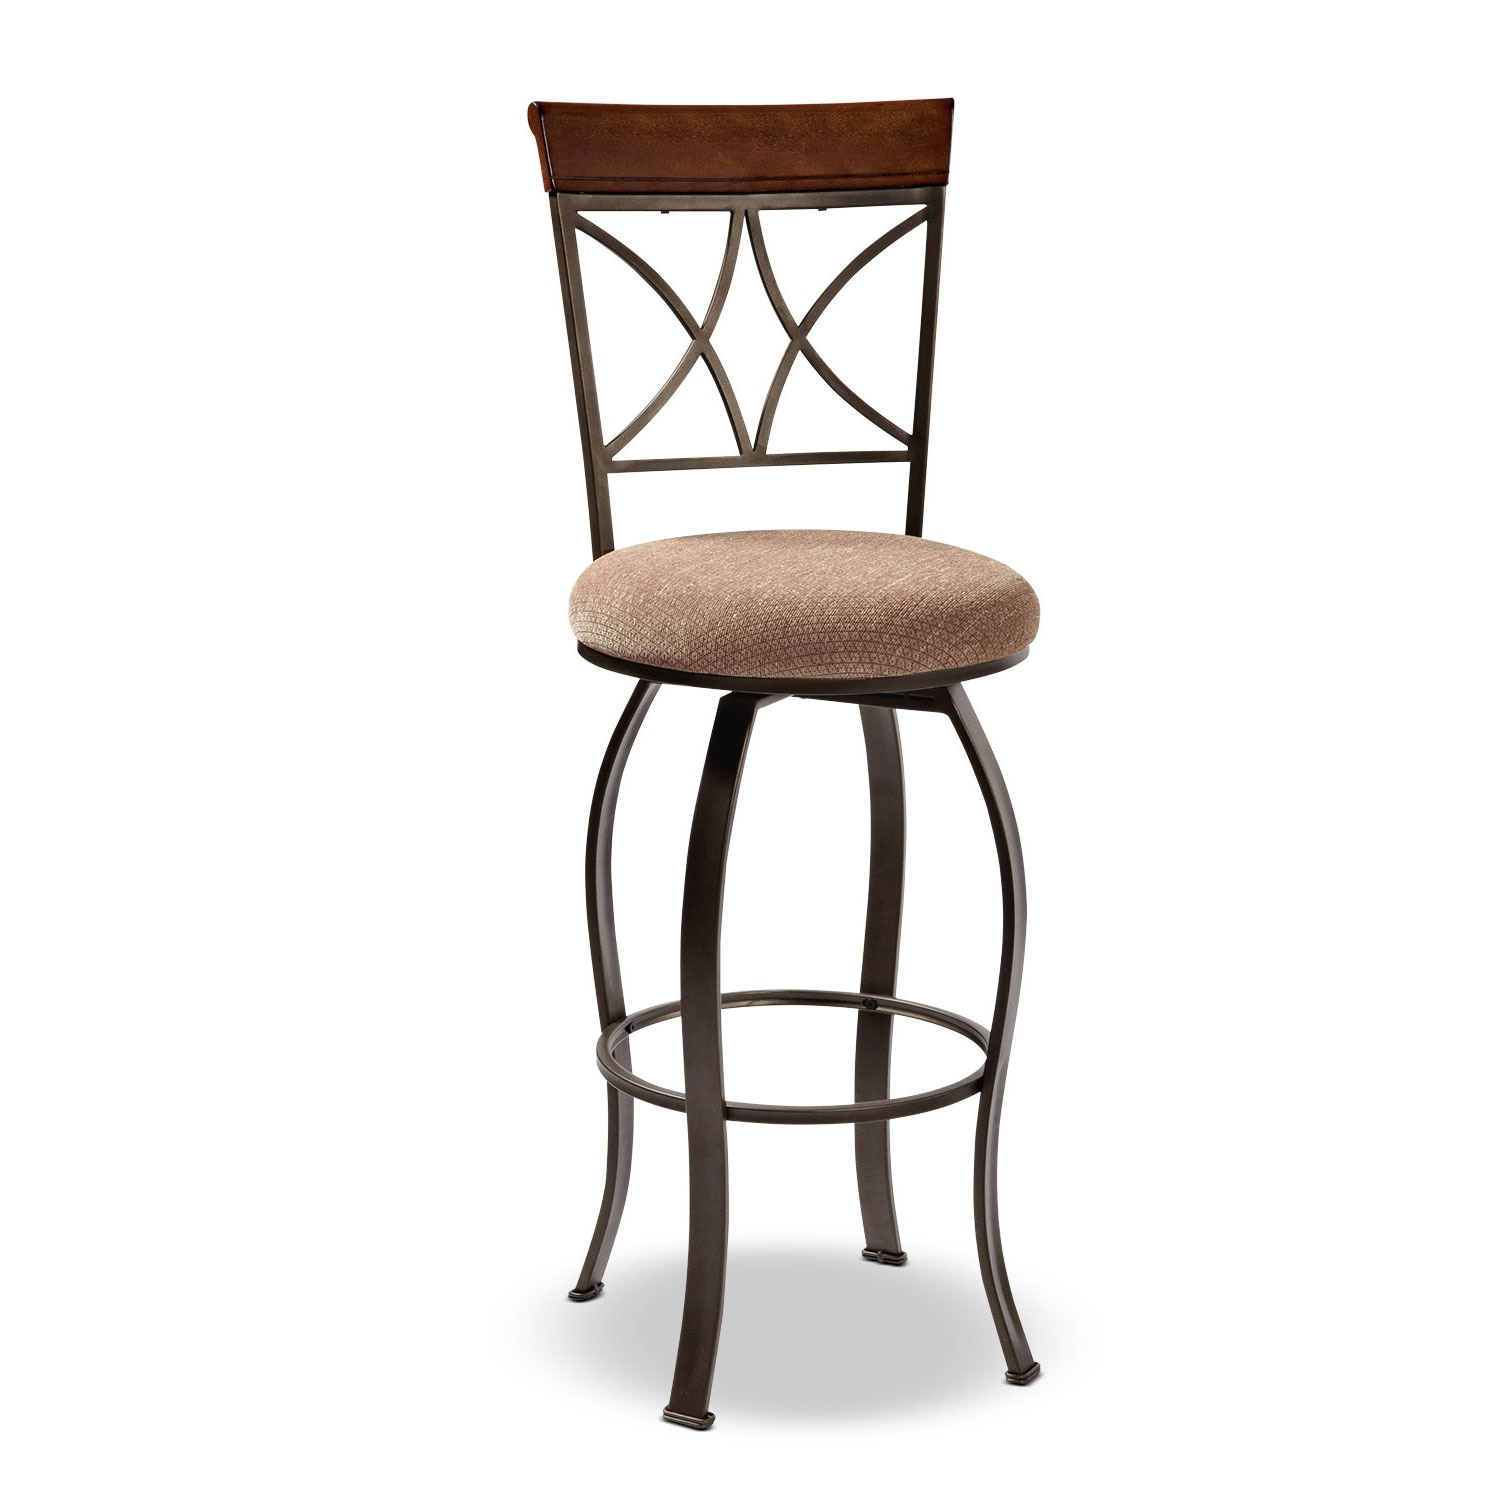 Rosedale Barstool - Medium Cherry